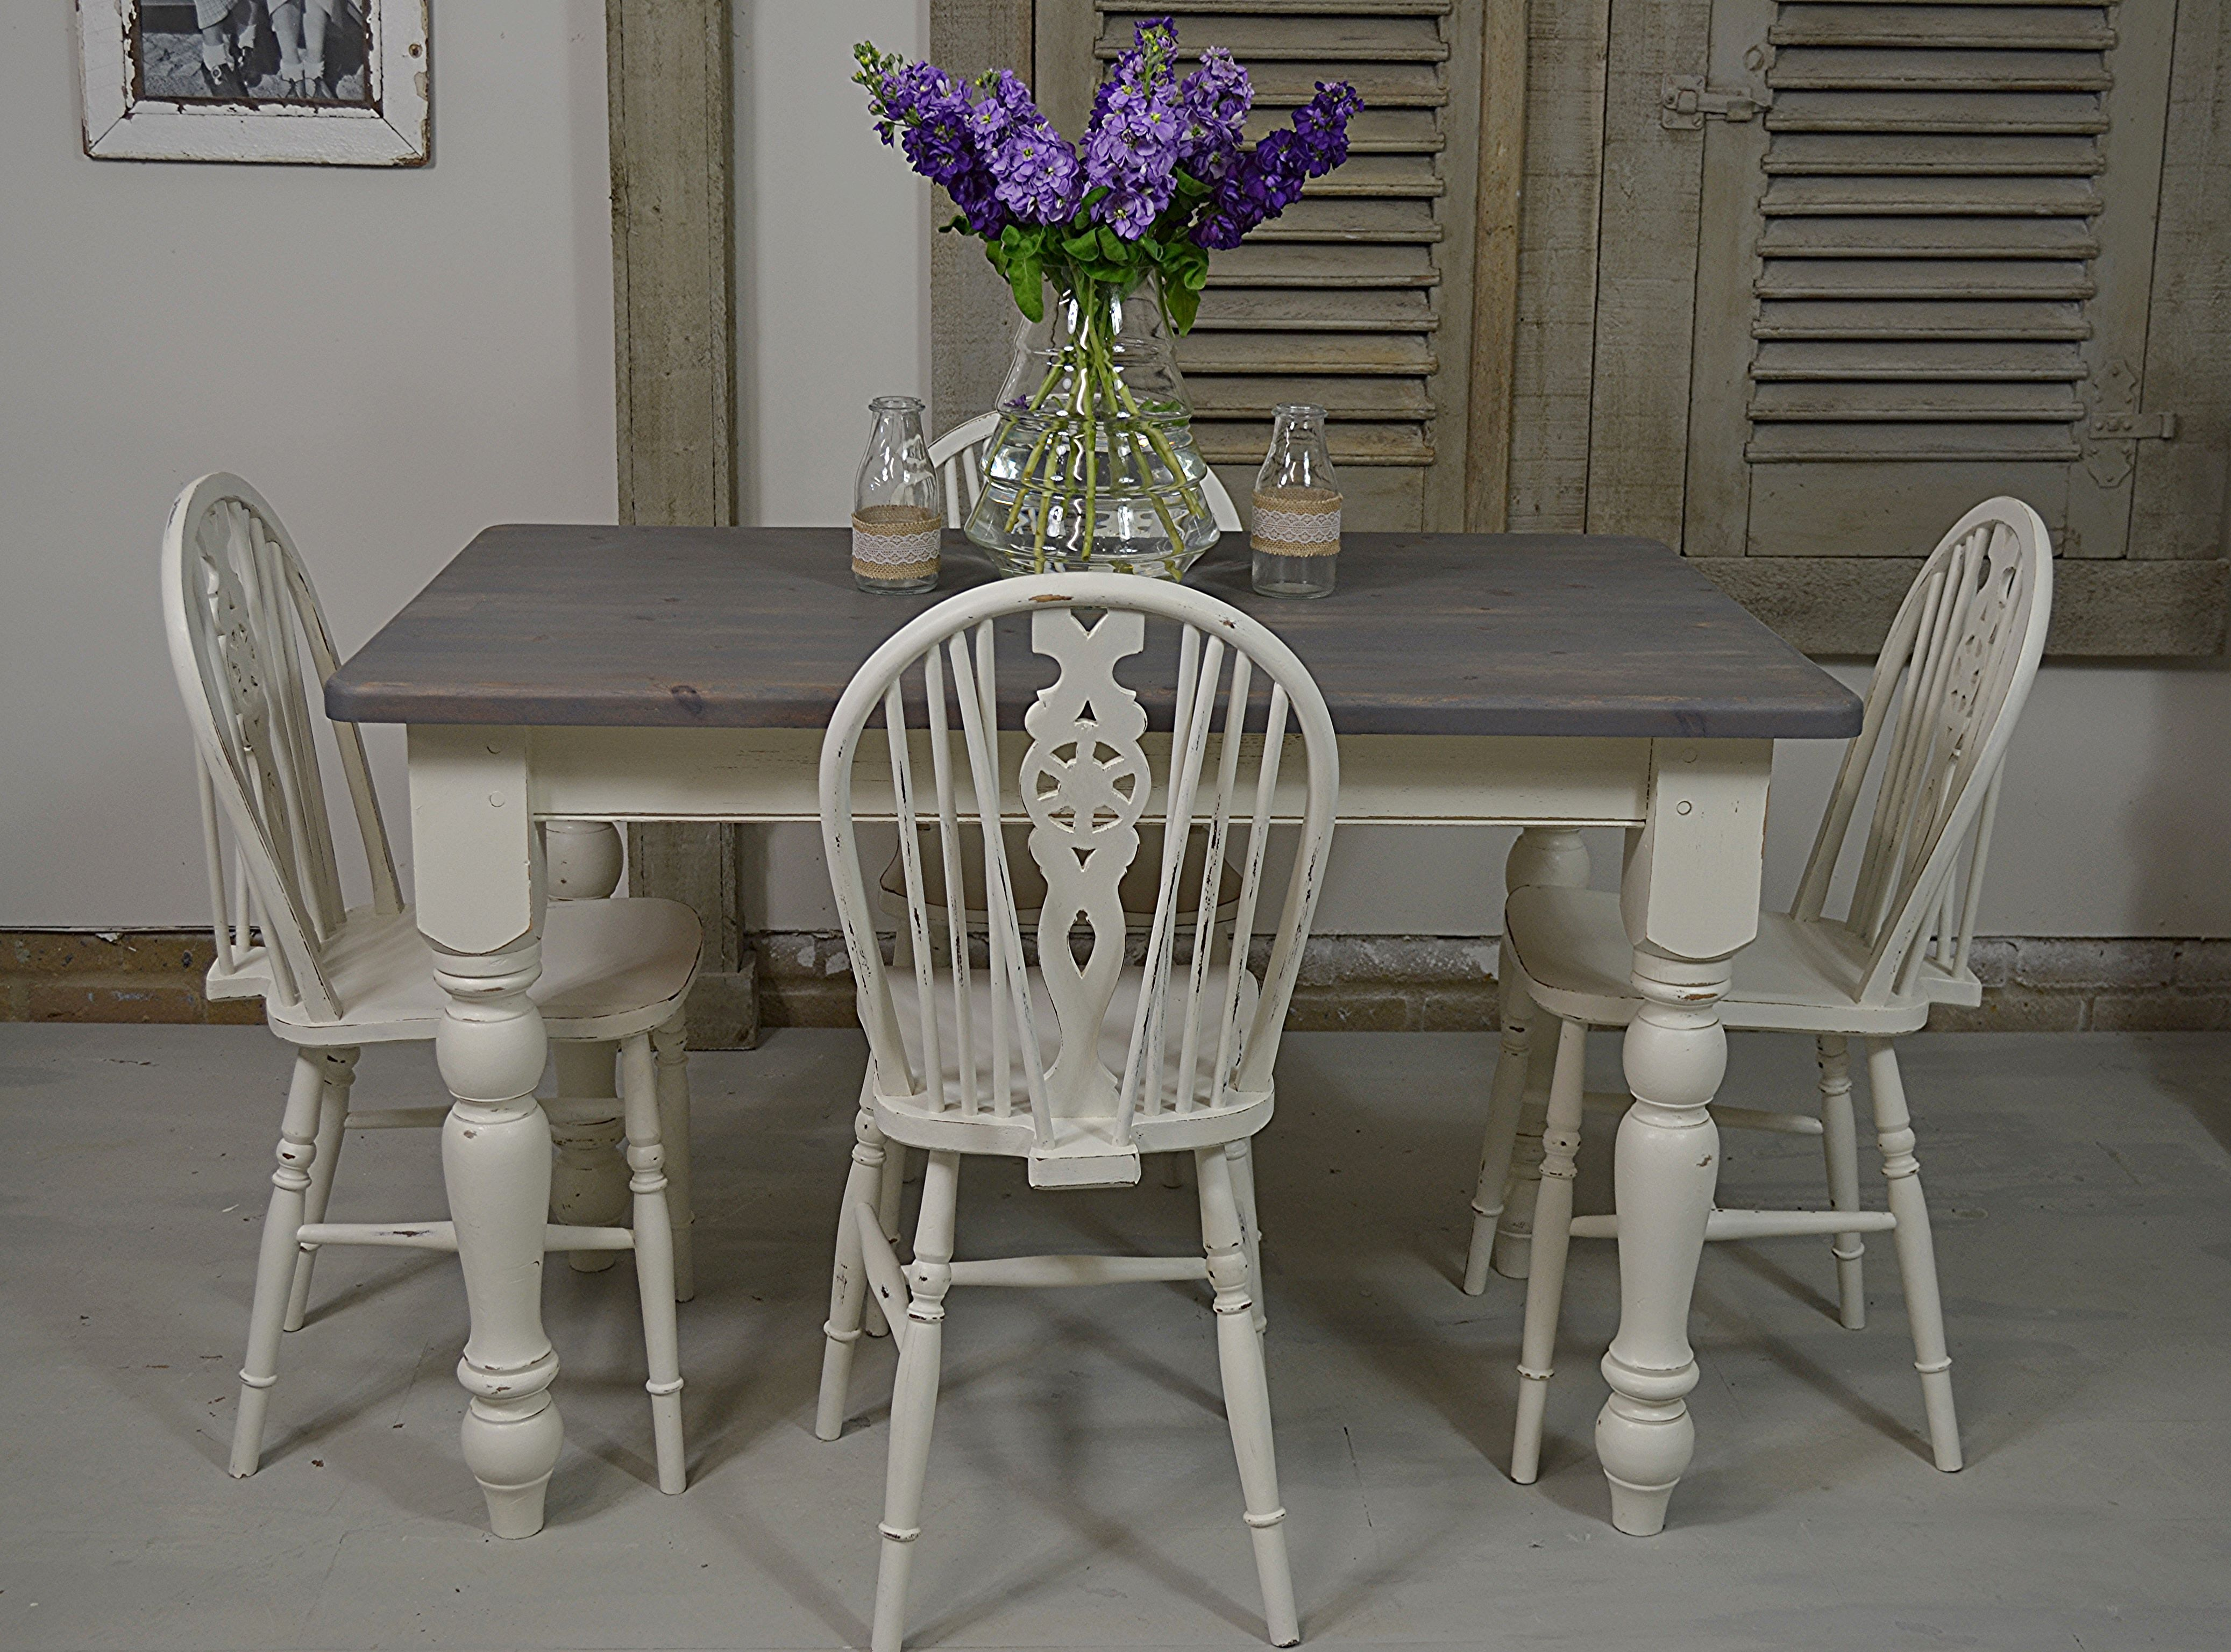 Farmhouse Style In Abundance With This Country Dining Set Painted Farrow Ball James